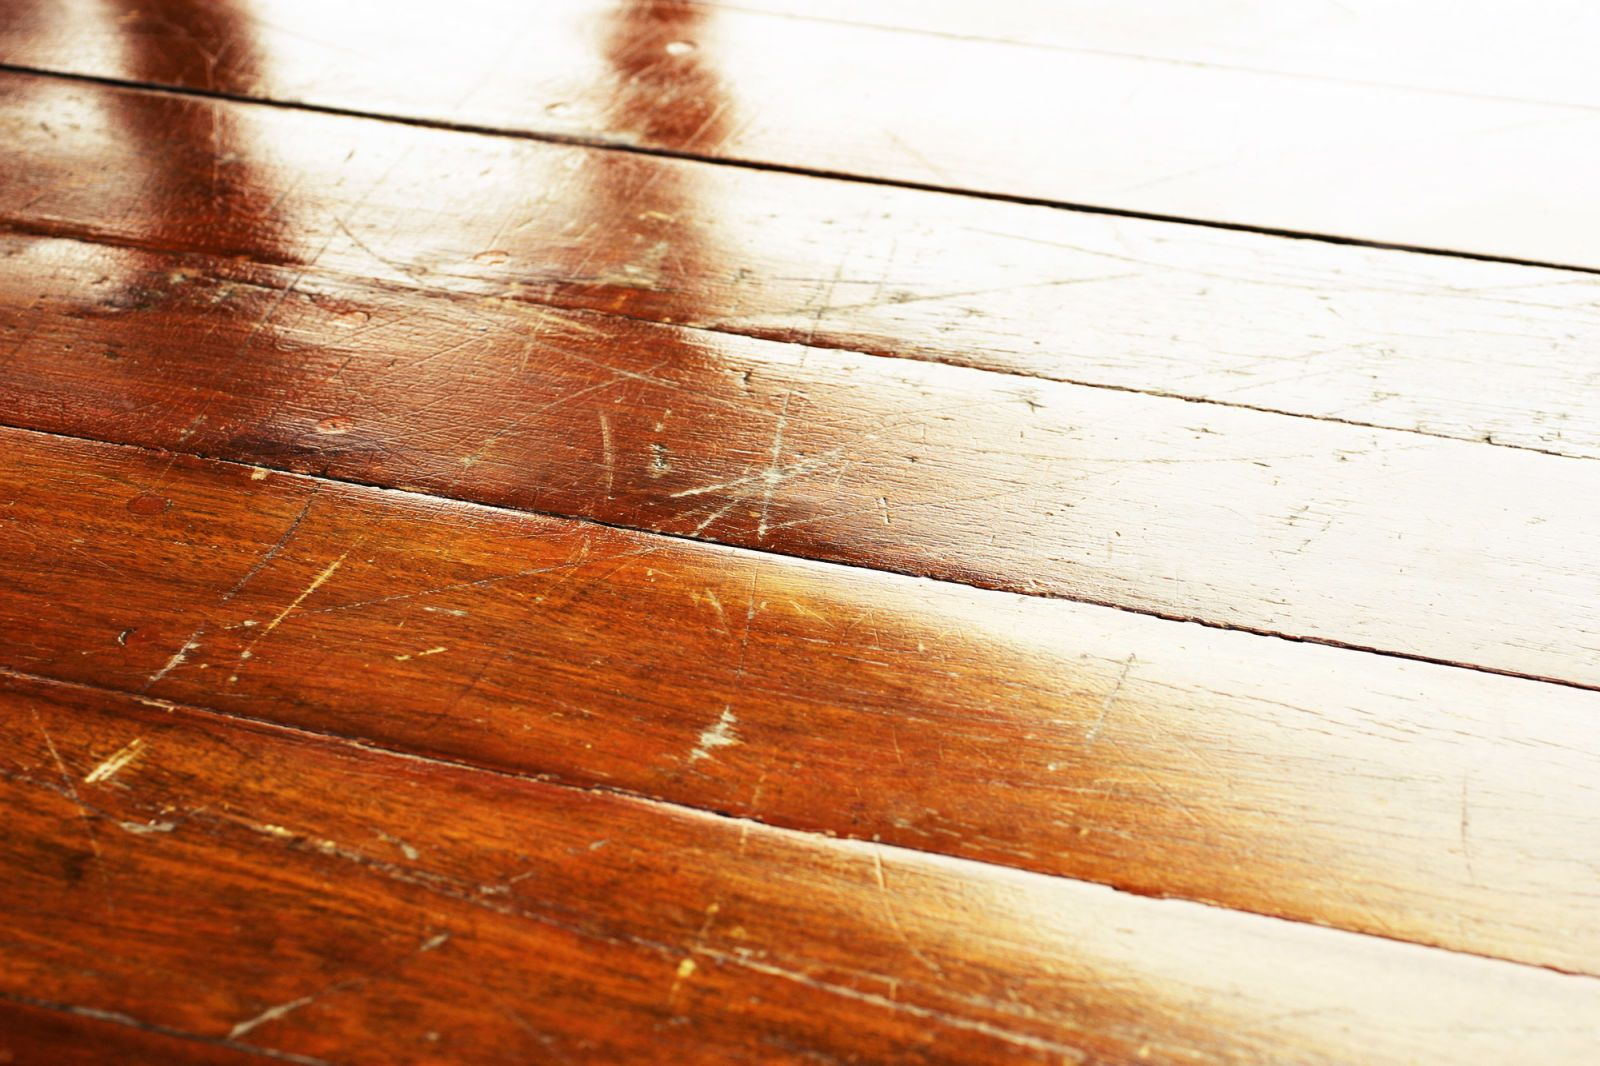 How To Fix Scratched And Creaky Floorboards Home Repairs Beautiful Homes Wooden Floorboards